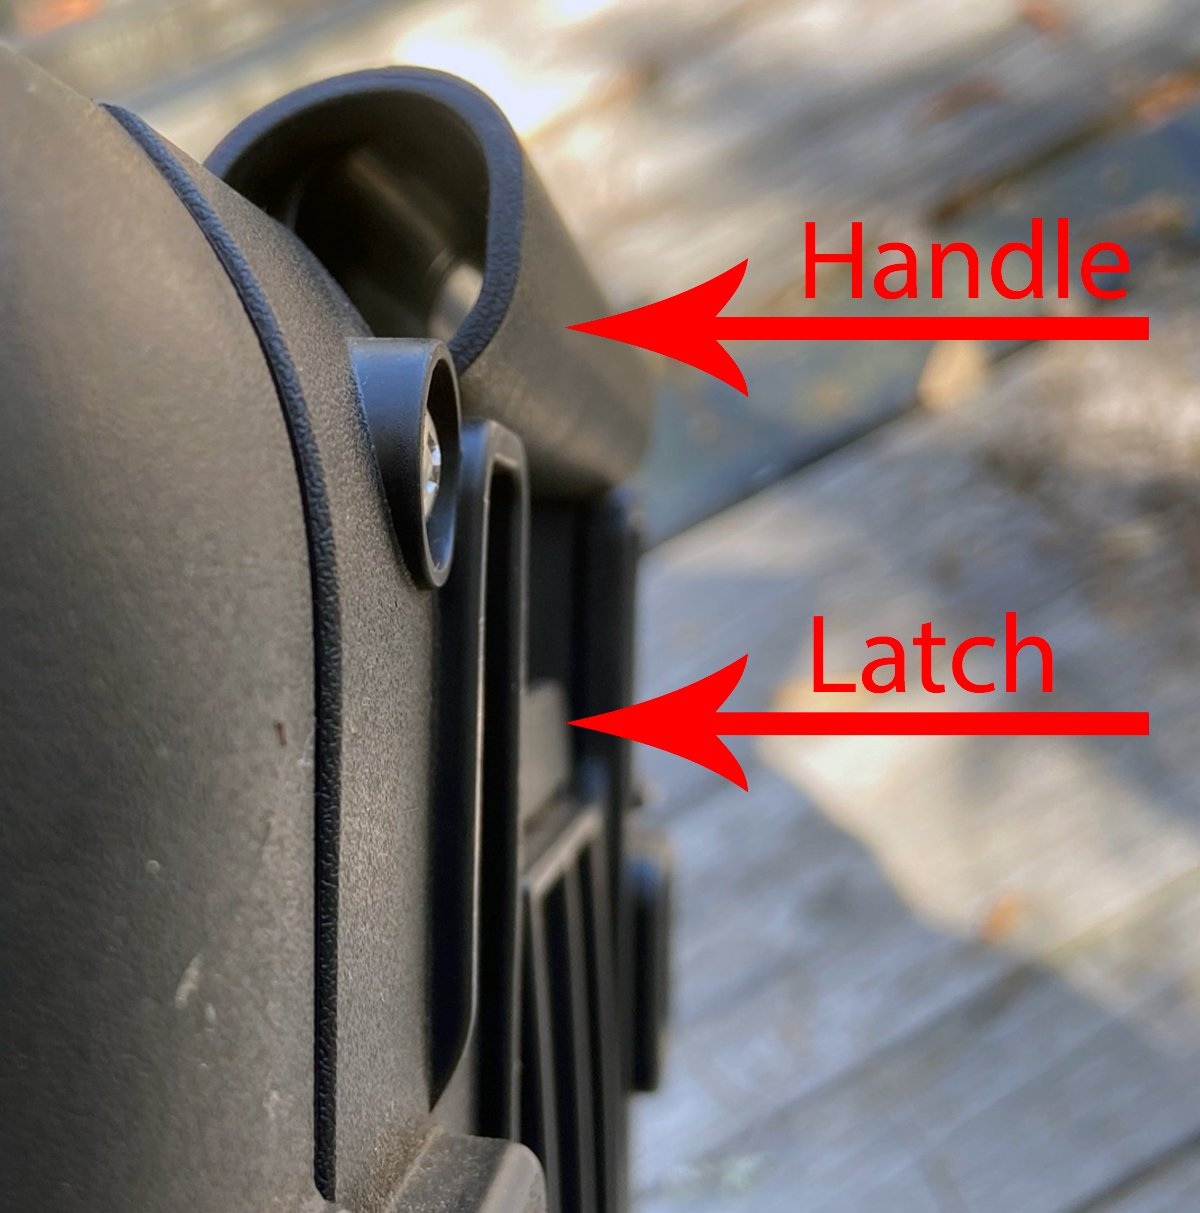 Handle latch is not likely to snag on anything (Photo © Russ Chastain)